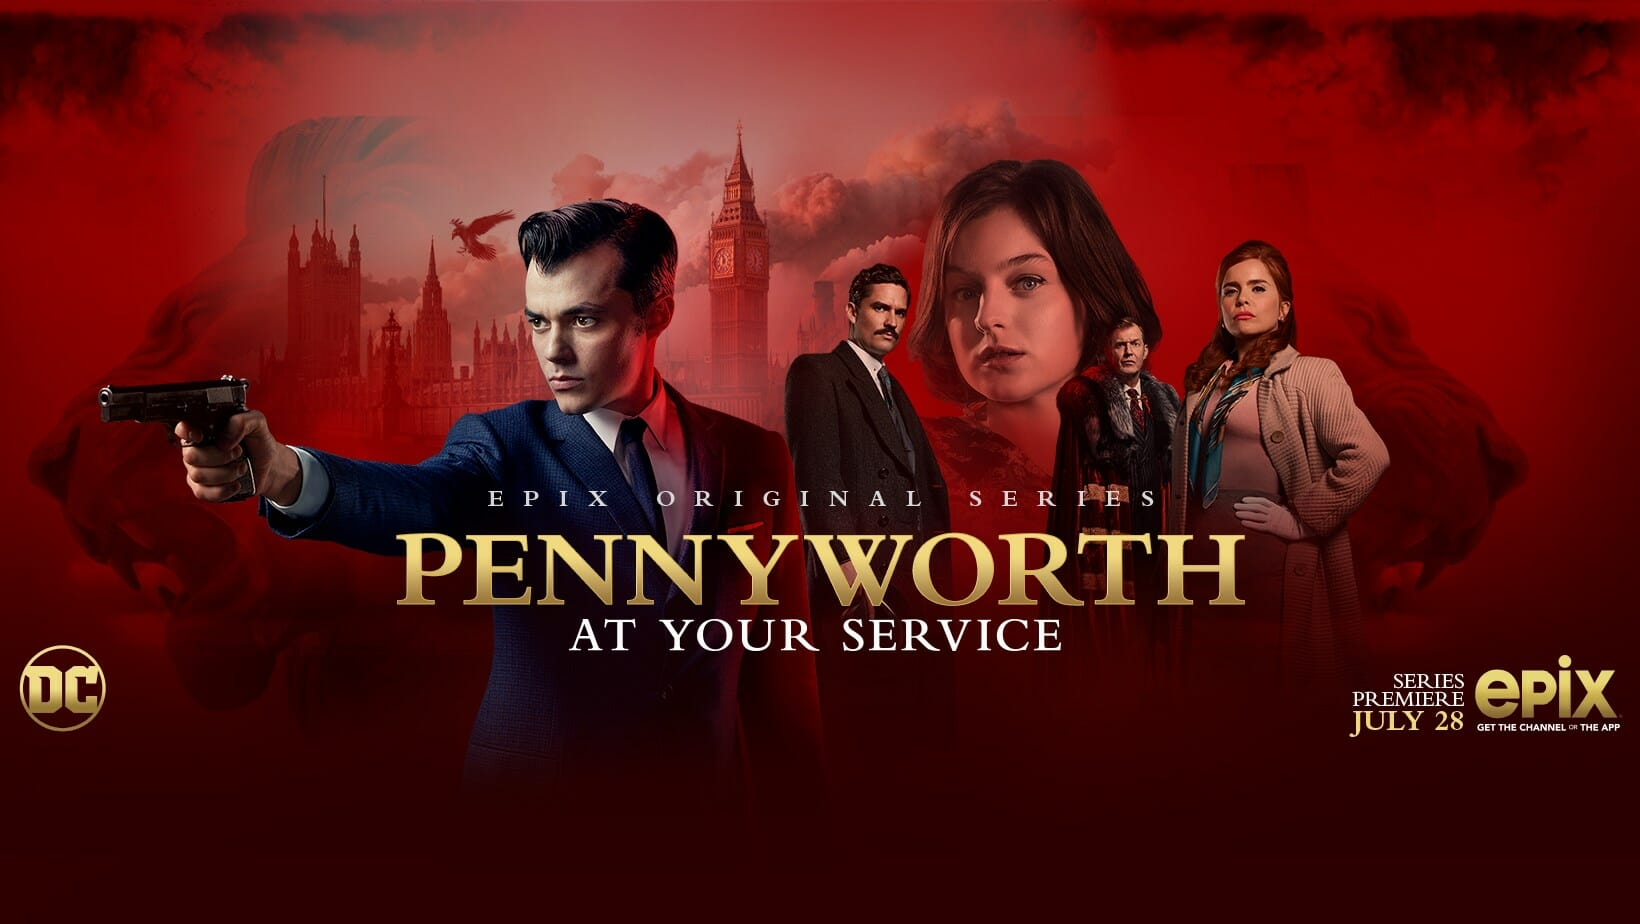 Pennyworth promo